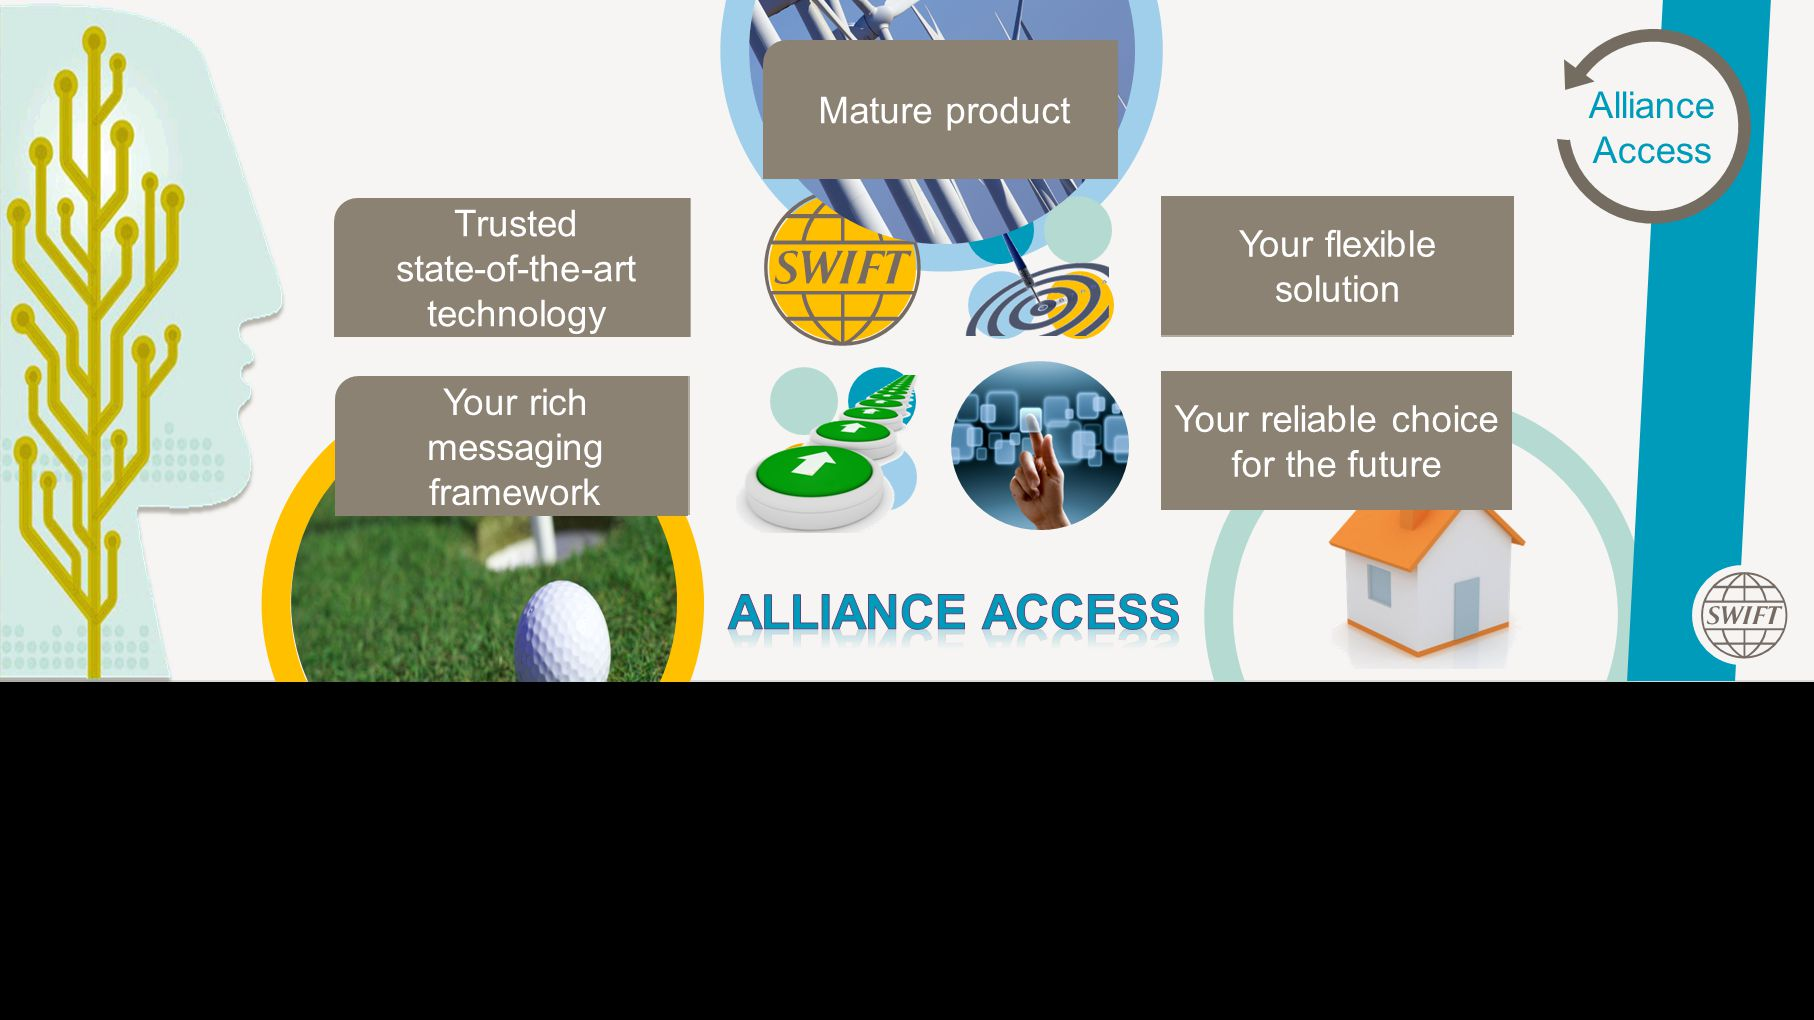 This Area Will Not Be Seen Alliance Access Your rich messaging framework Your flexible solution Your reliable choice for the future Trusted state-of-the-art technology Mature product